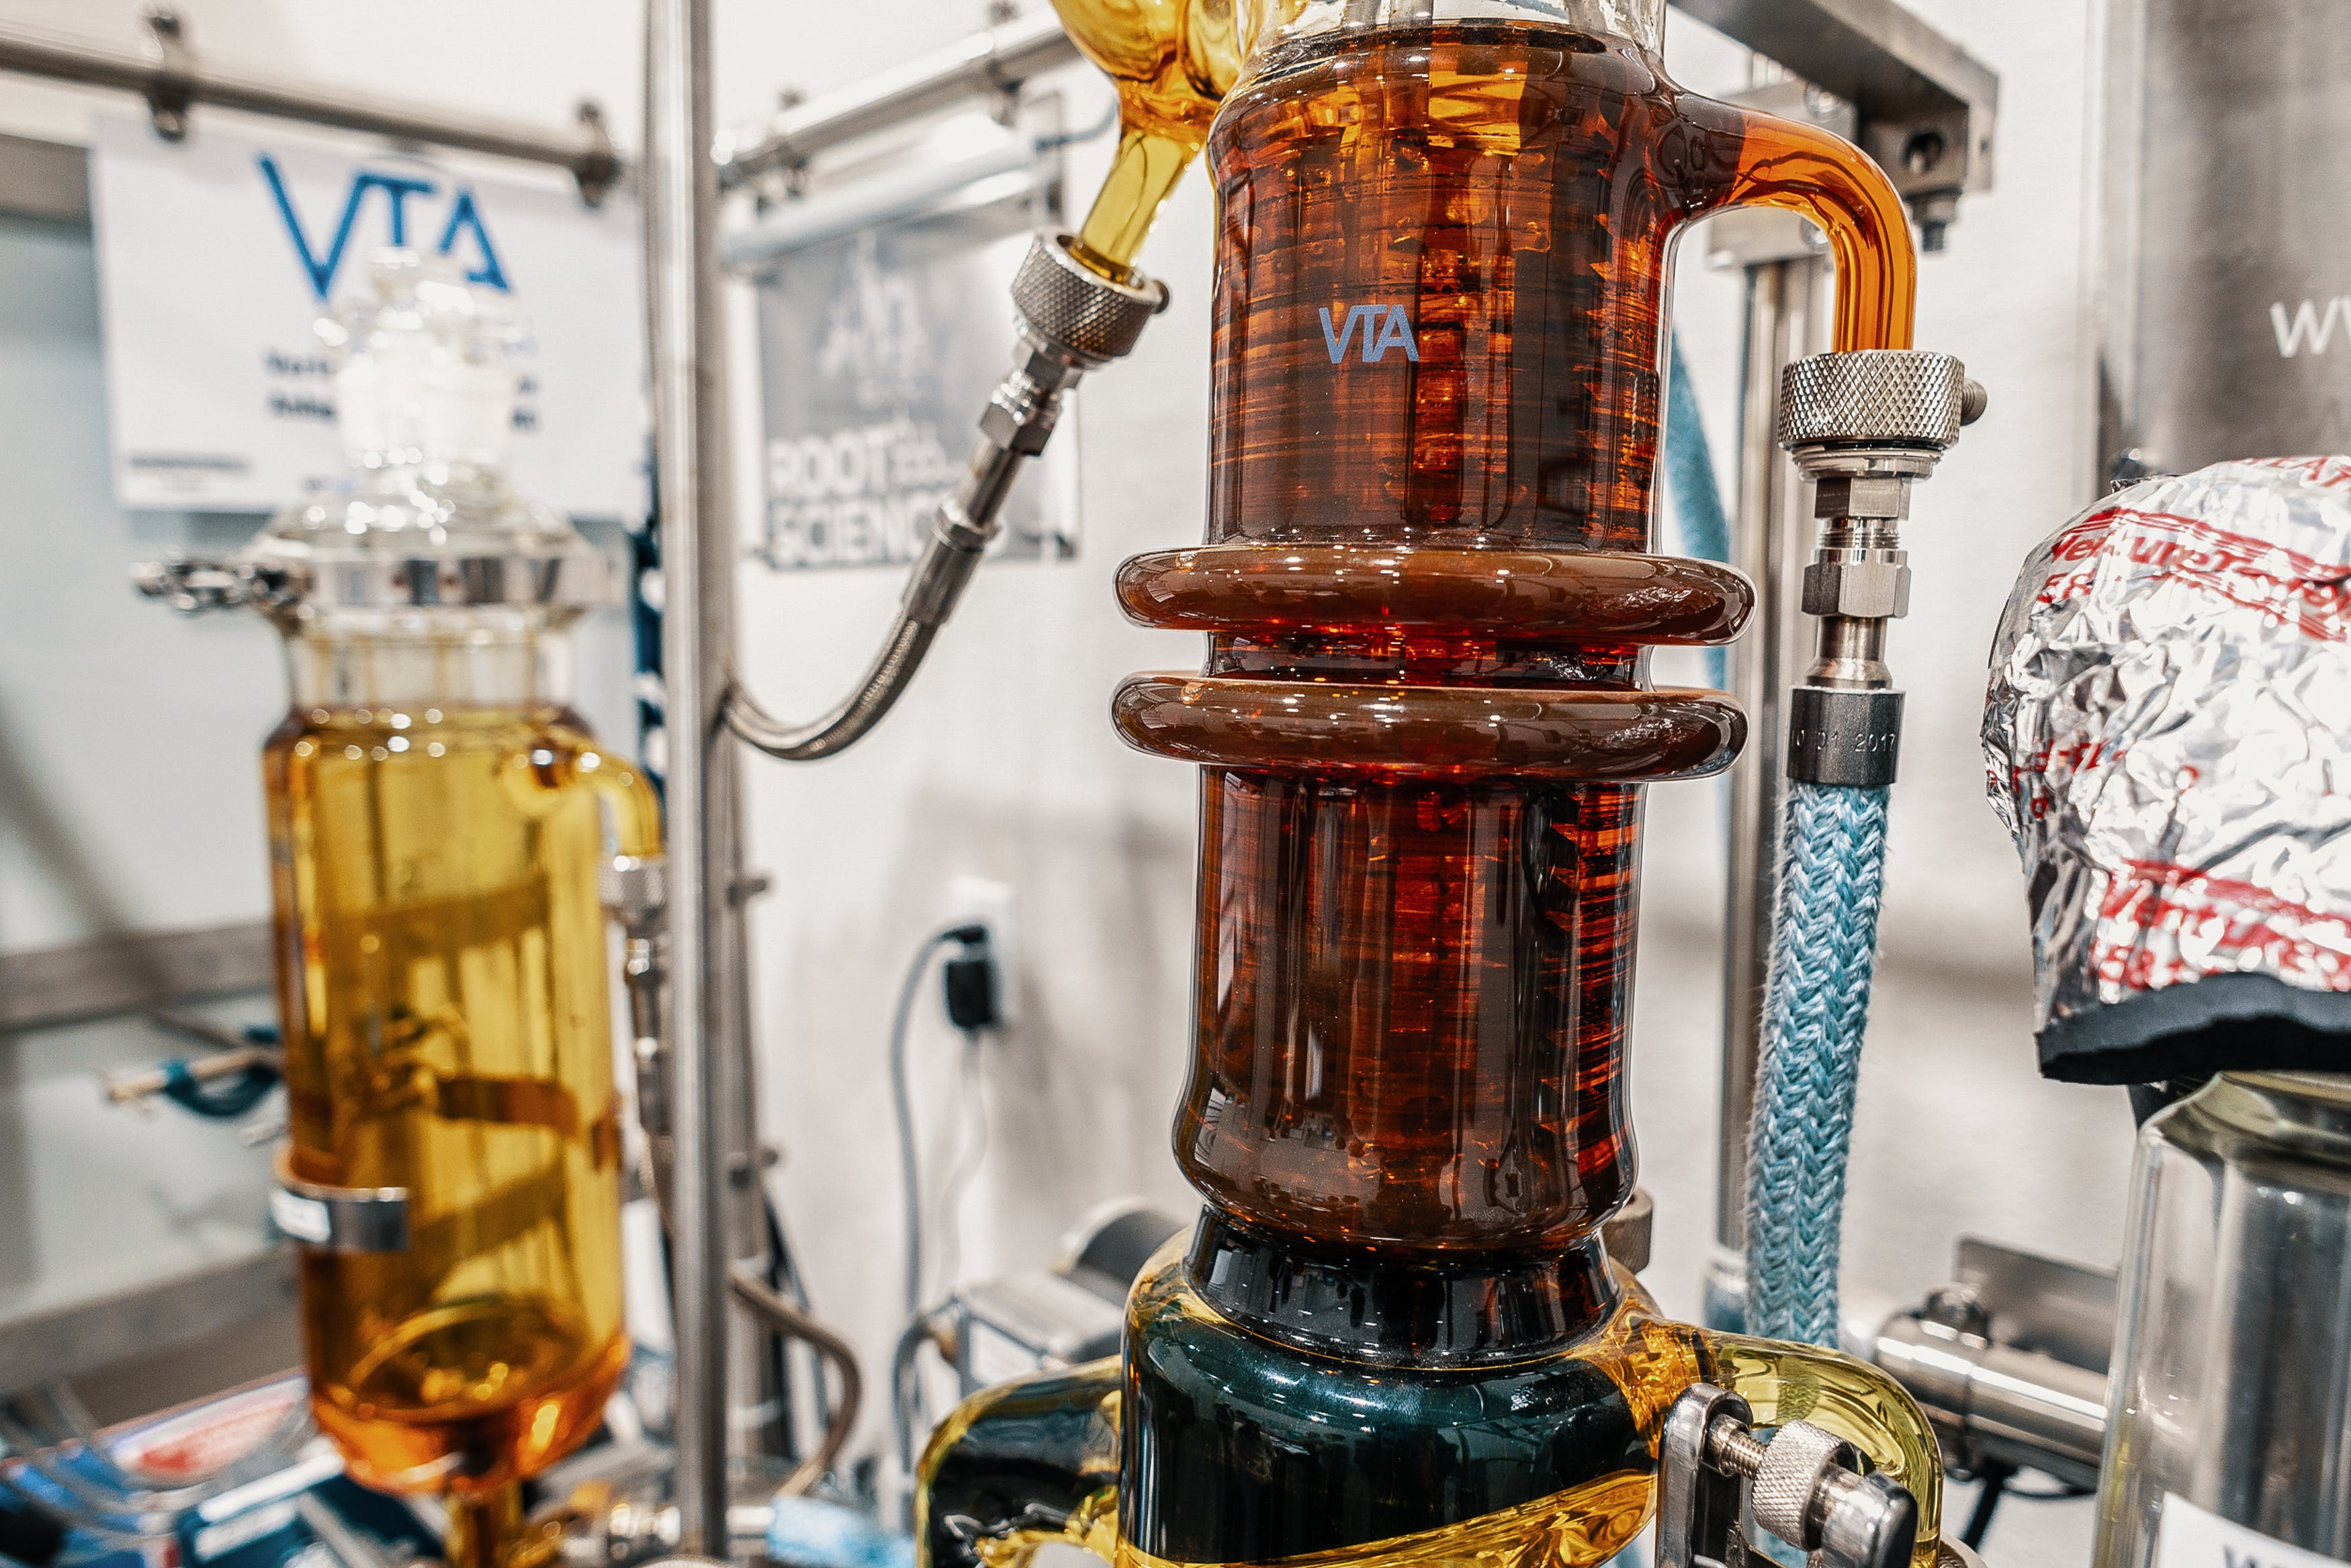 DSC 8765 1 Ethanol Extraction vs. CO2 Extraction: What Is The Best Way To Make Hemp Oil?